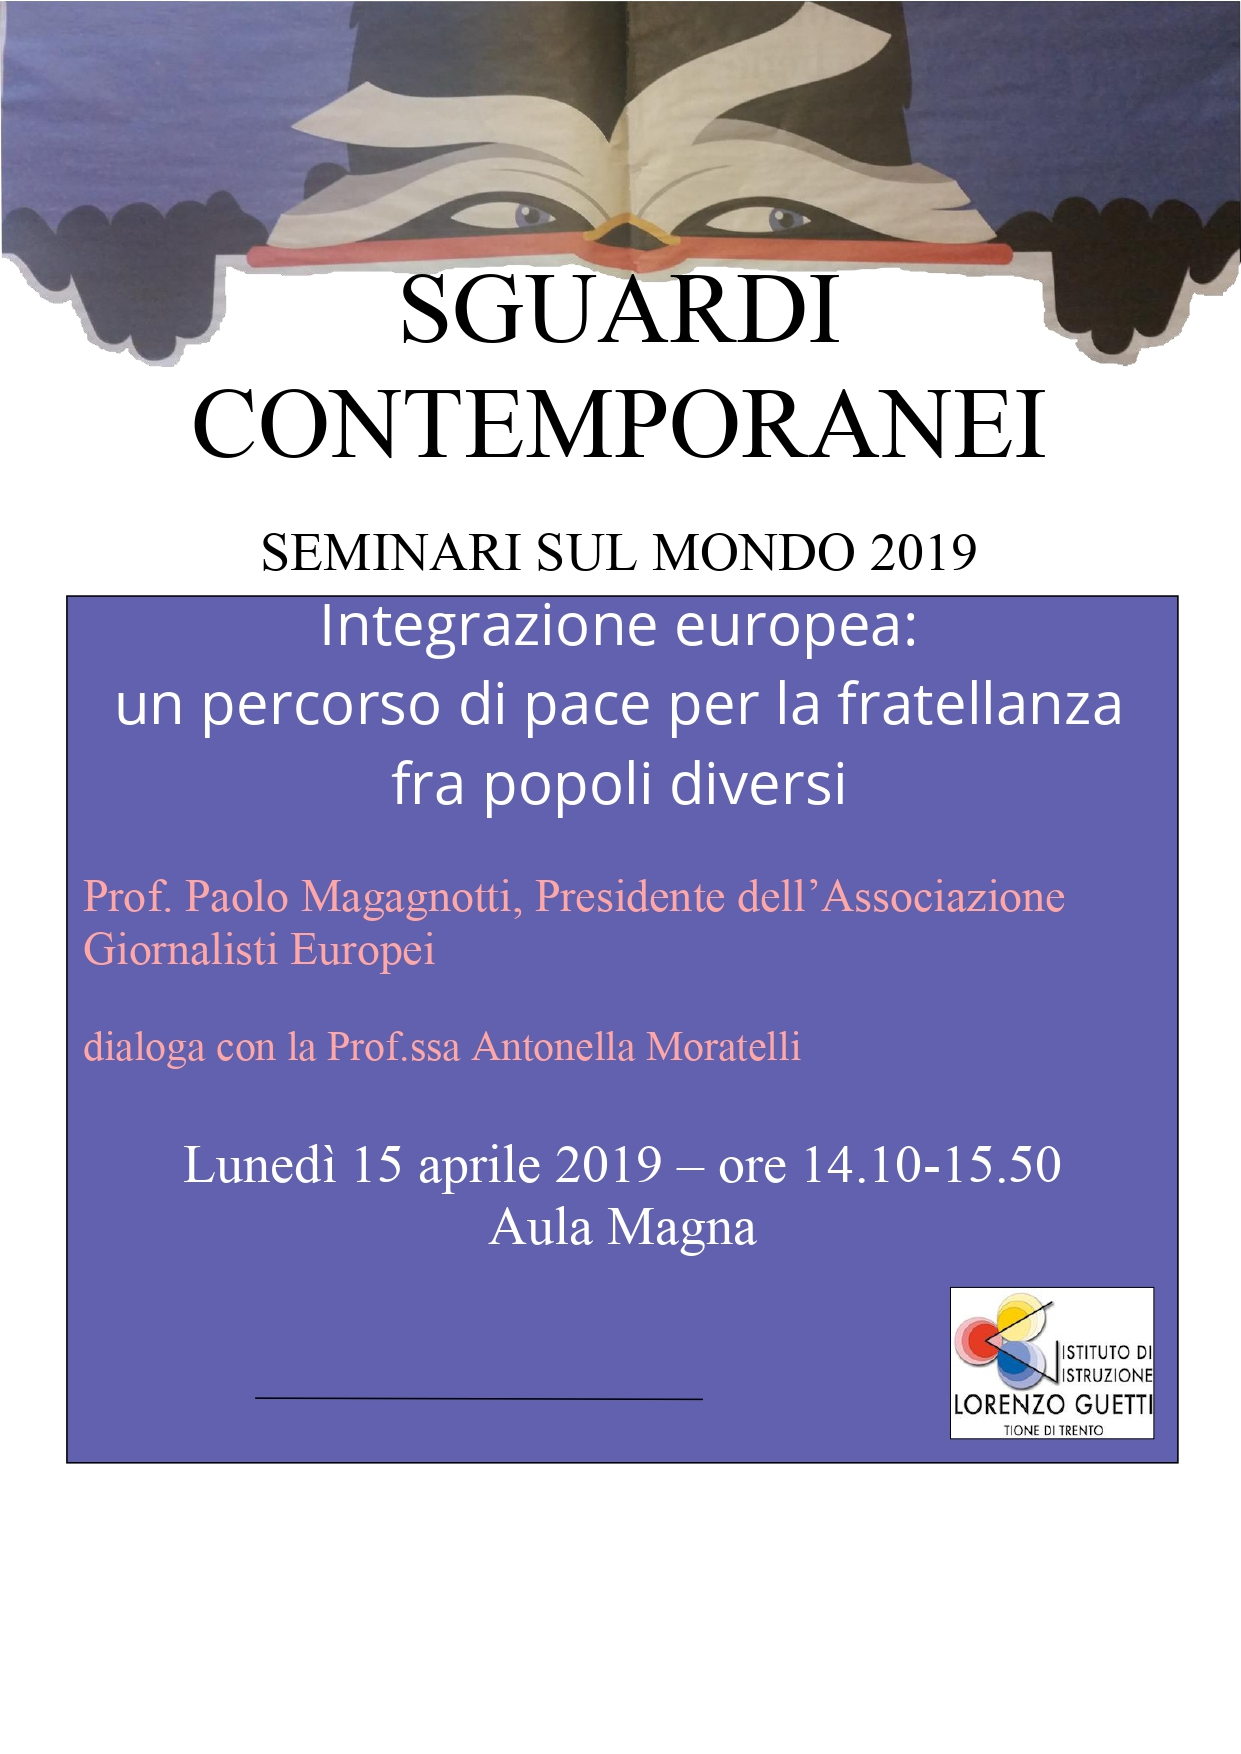 SGUARDI CONTEMPORANEI 2019